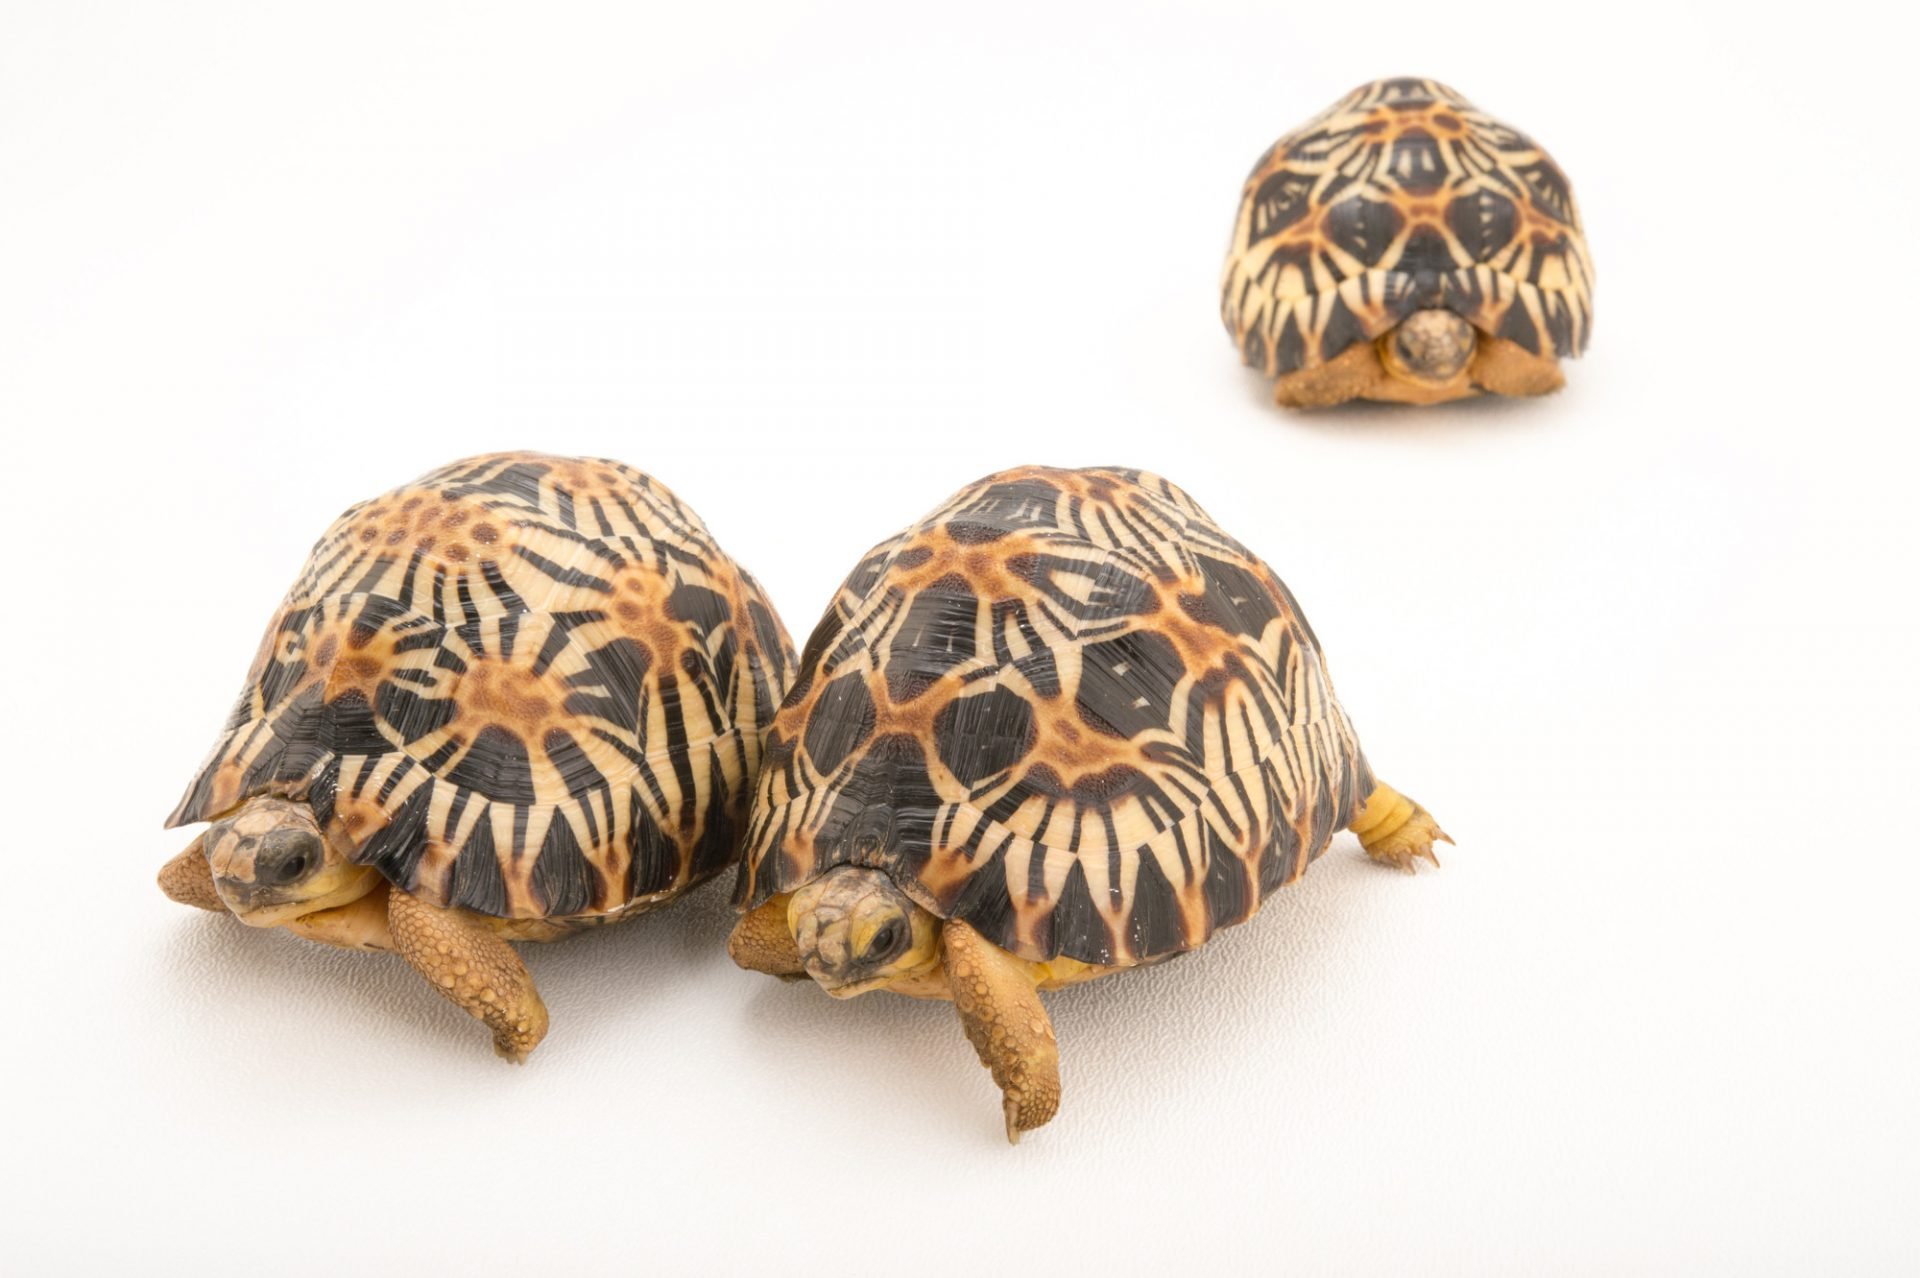 Picture of critically endangered and federally endangered, yearling radiated tortoises (Astrochelys radiata) at the Turtle Conservancy